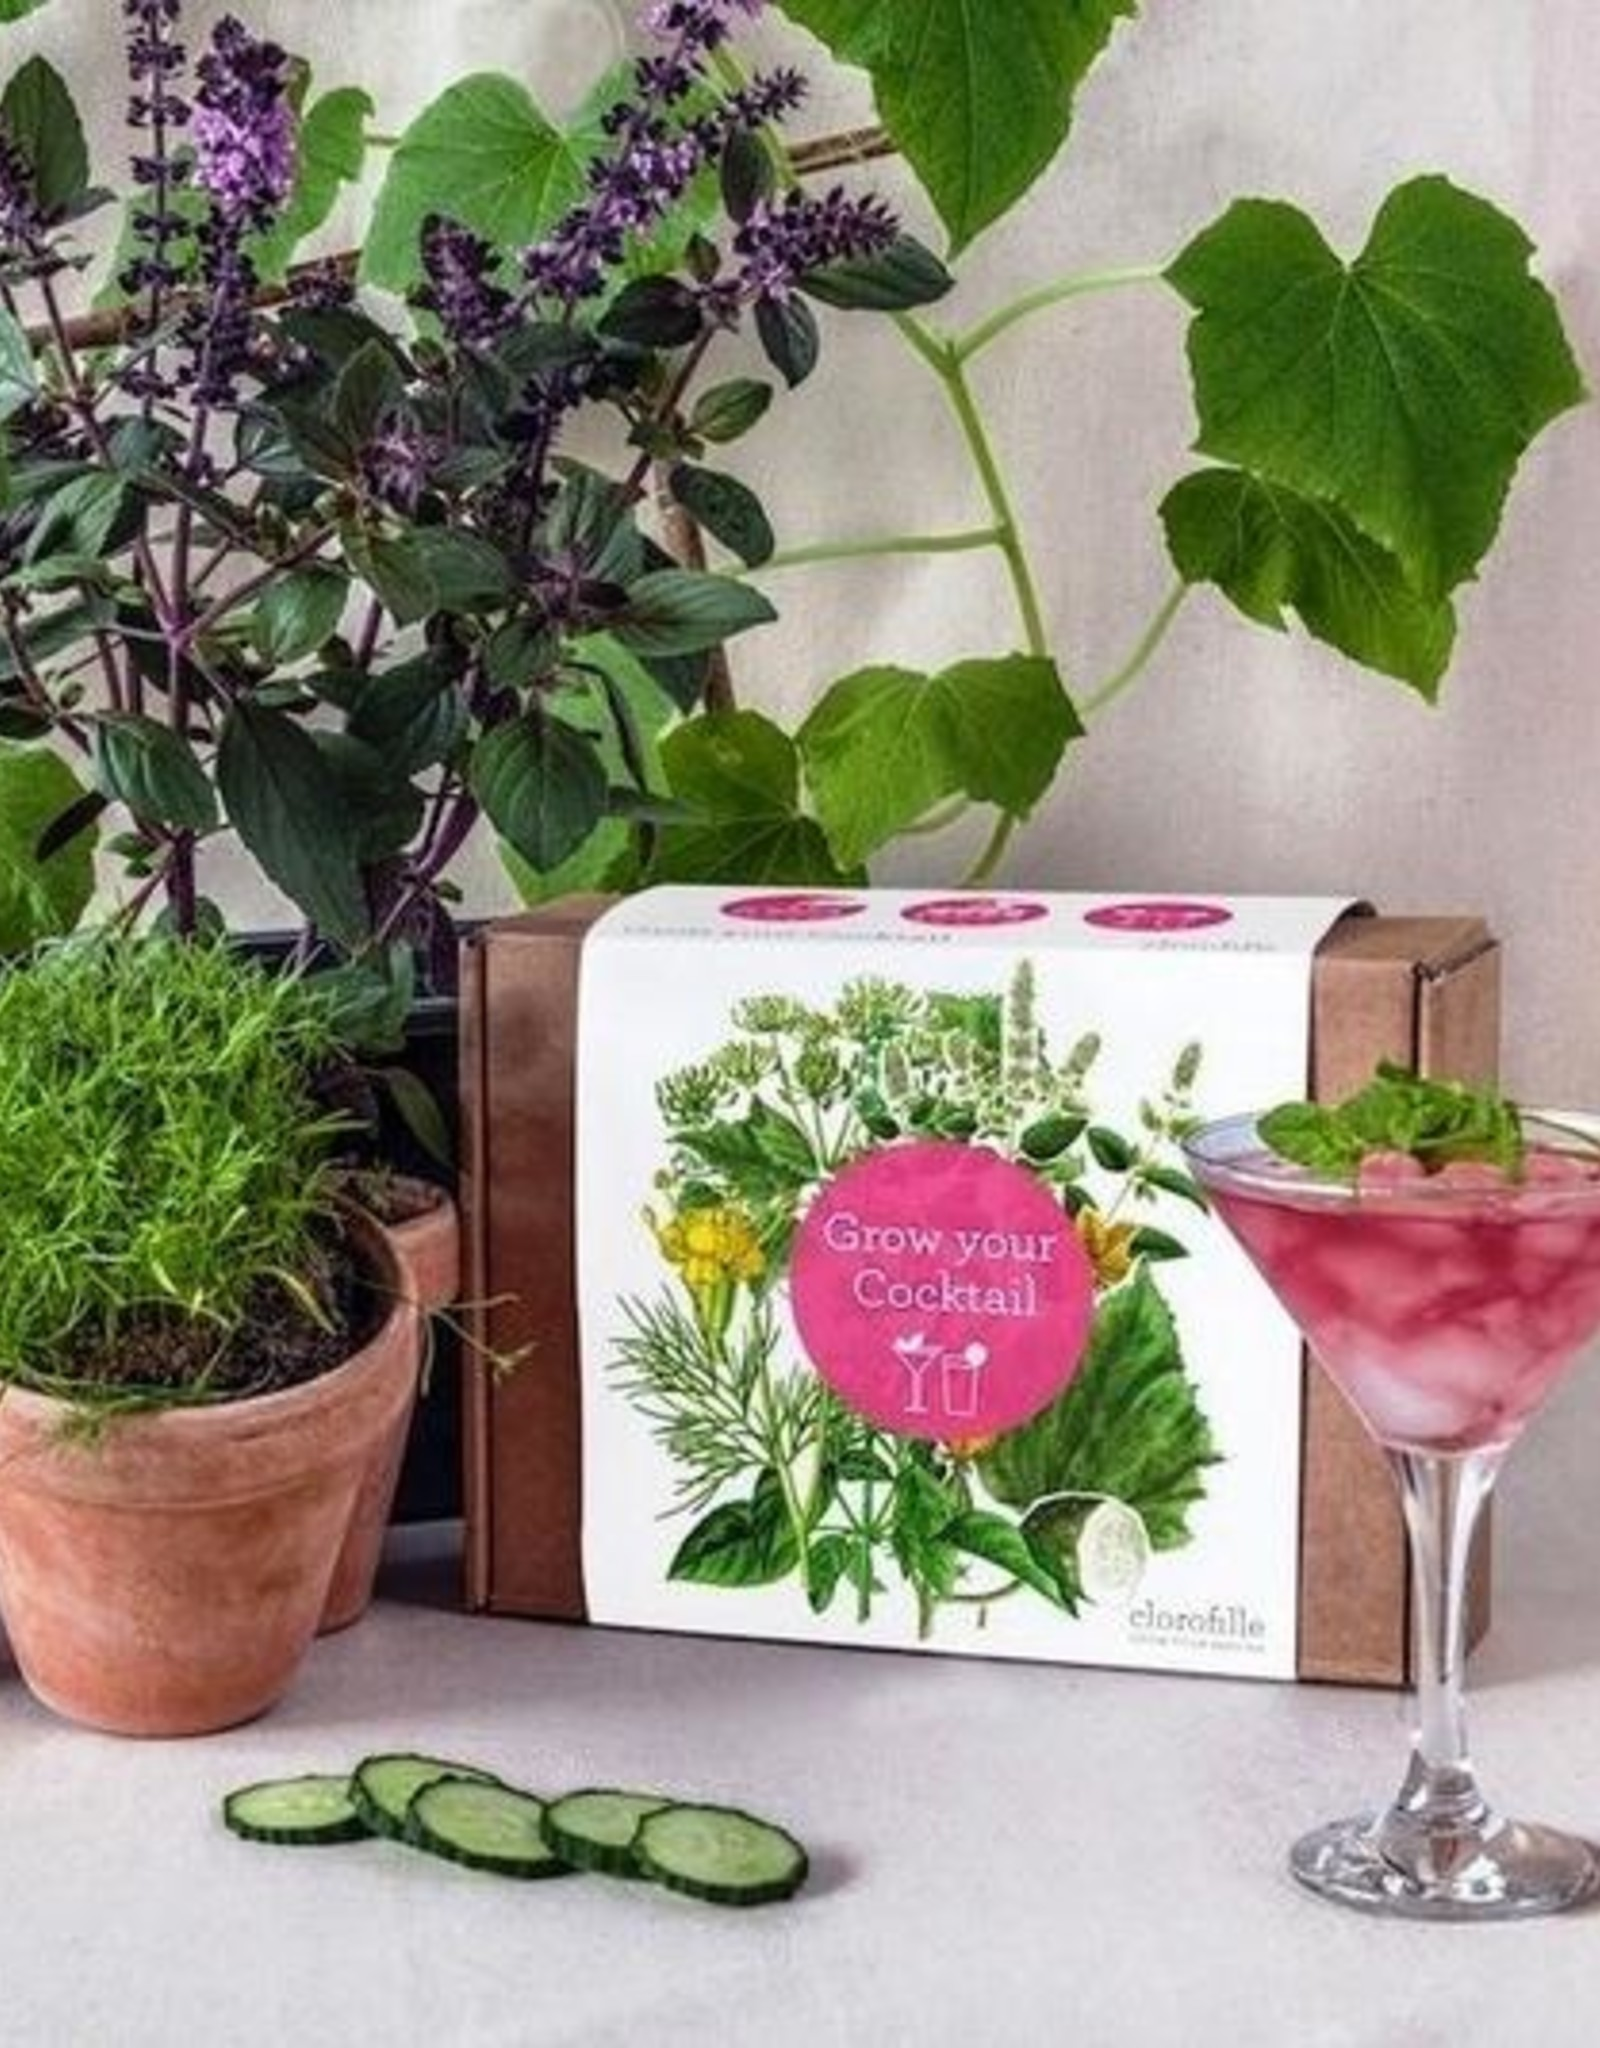 Jiminy Eco Toys Grow Your Own Cocktails!